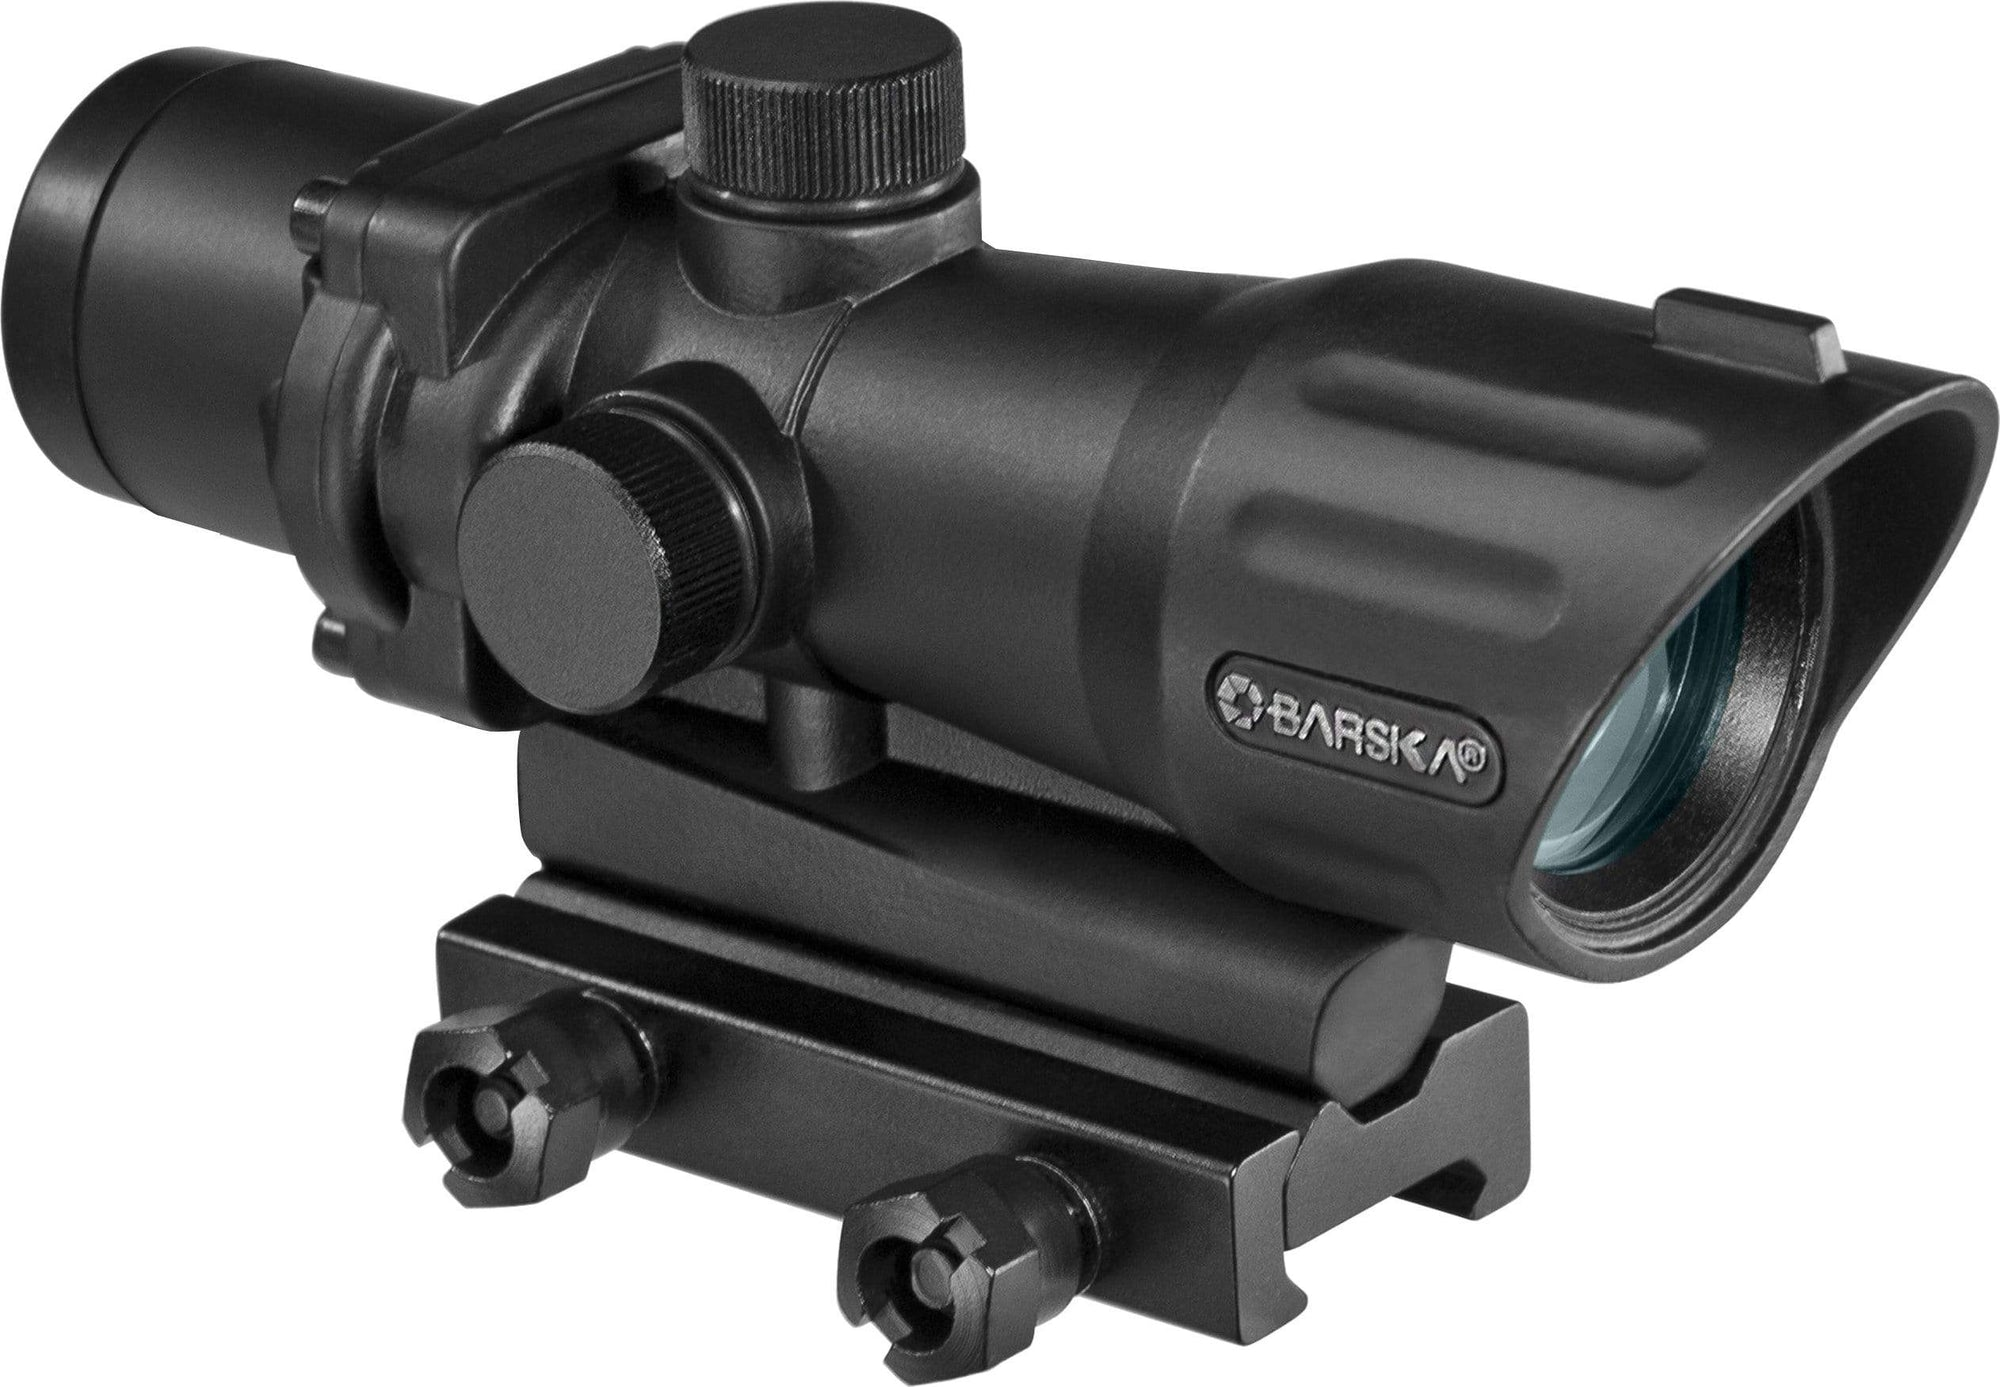 Barska 4 x 32mm Electro Sight Mil Dot Armadillo Safe and Vault